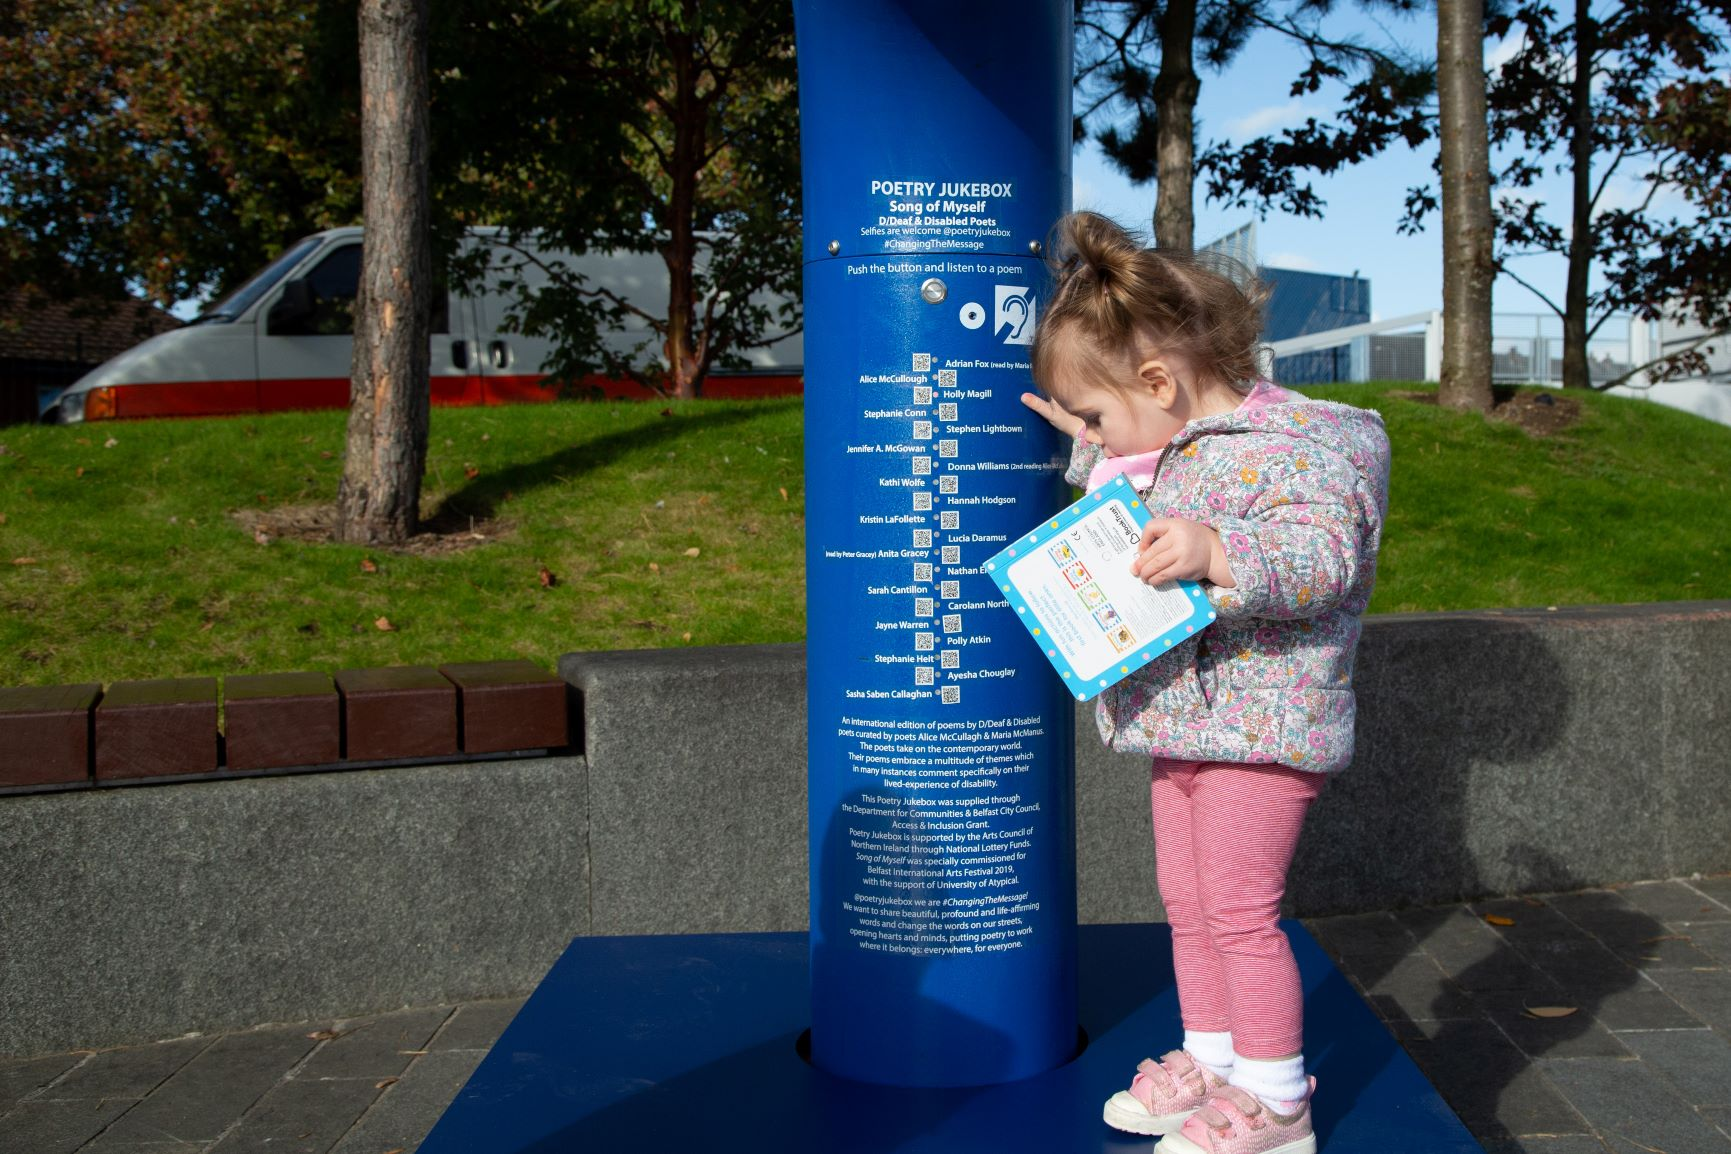 Poetry Jukebox at CS Lewis Square with features for D/deaf and disabled users